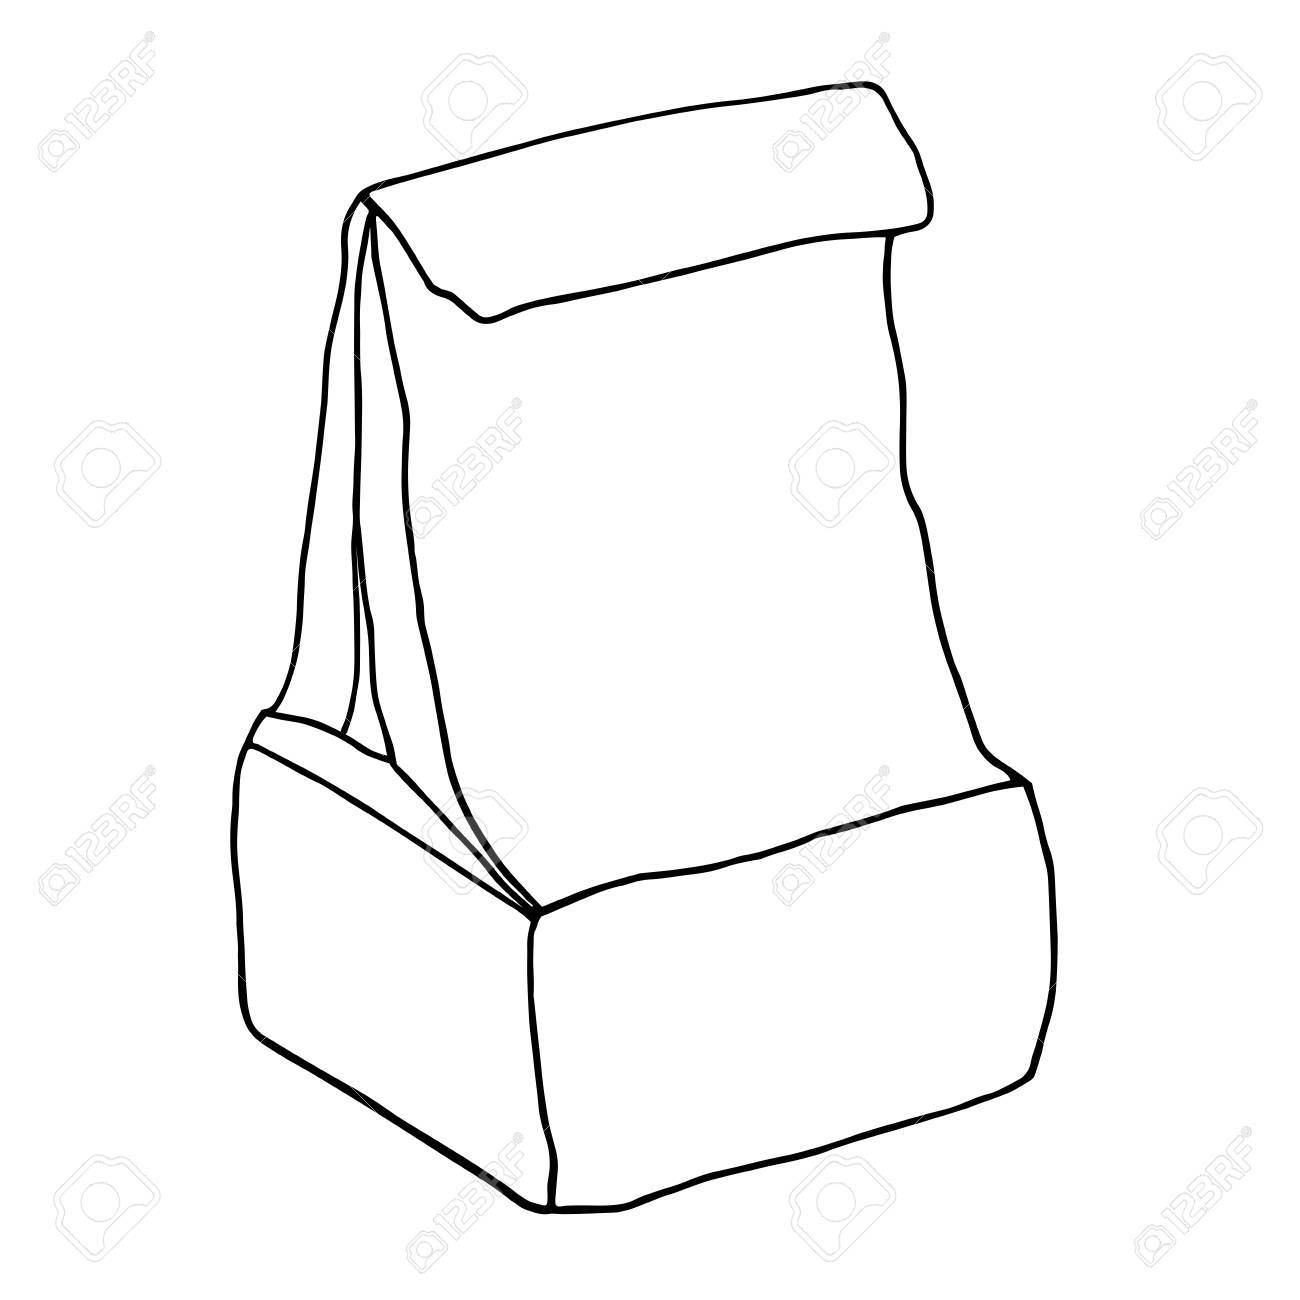 lunch box drawing at getdrawings com free for personal use lunch